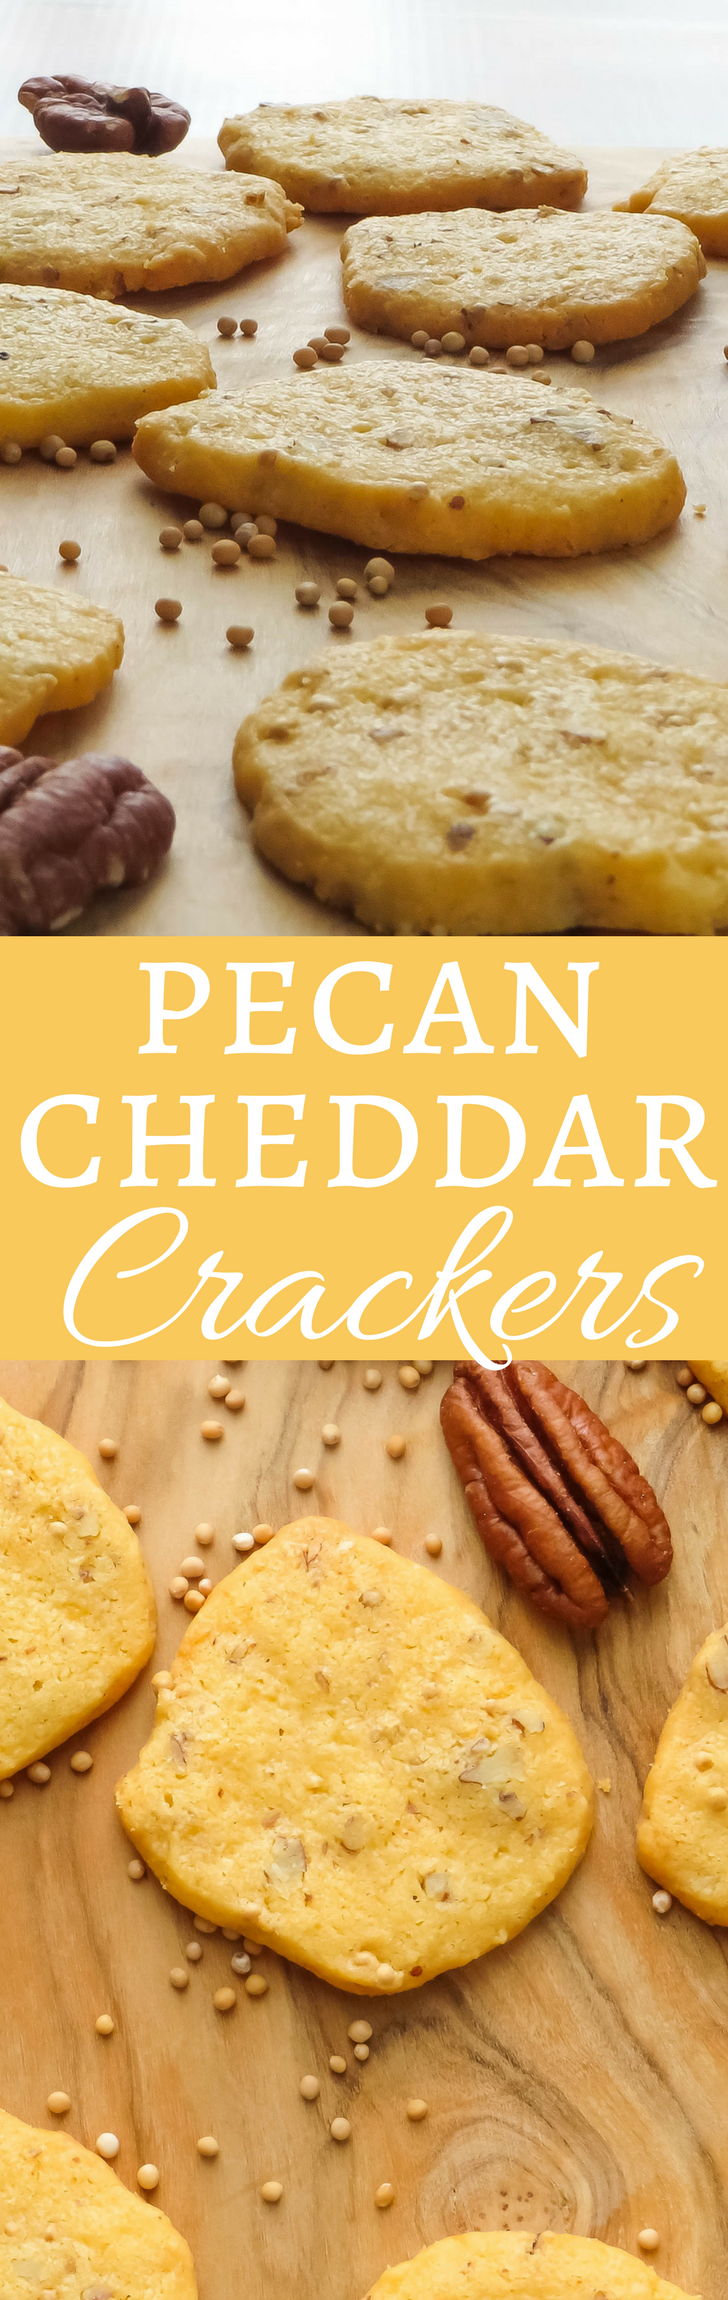 An easy recipe for cheesy, flaky crackers that are assembled in the food processor and can be made ahead.  Tastes like a grown up Cheez-It!